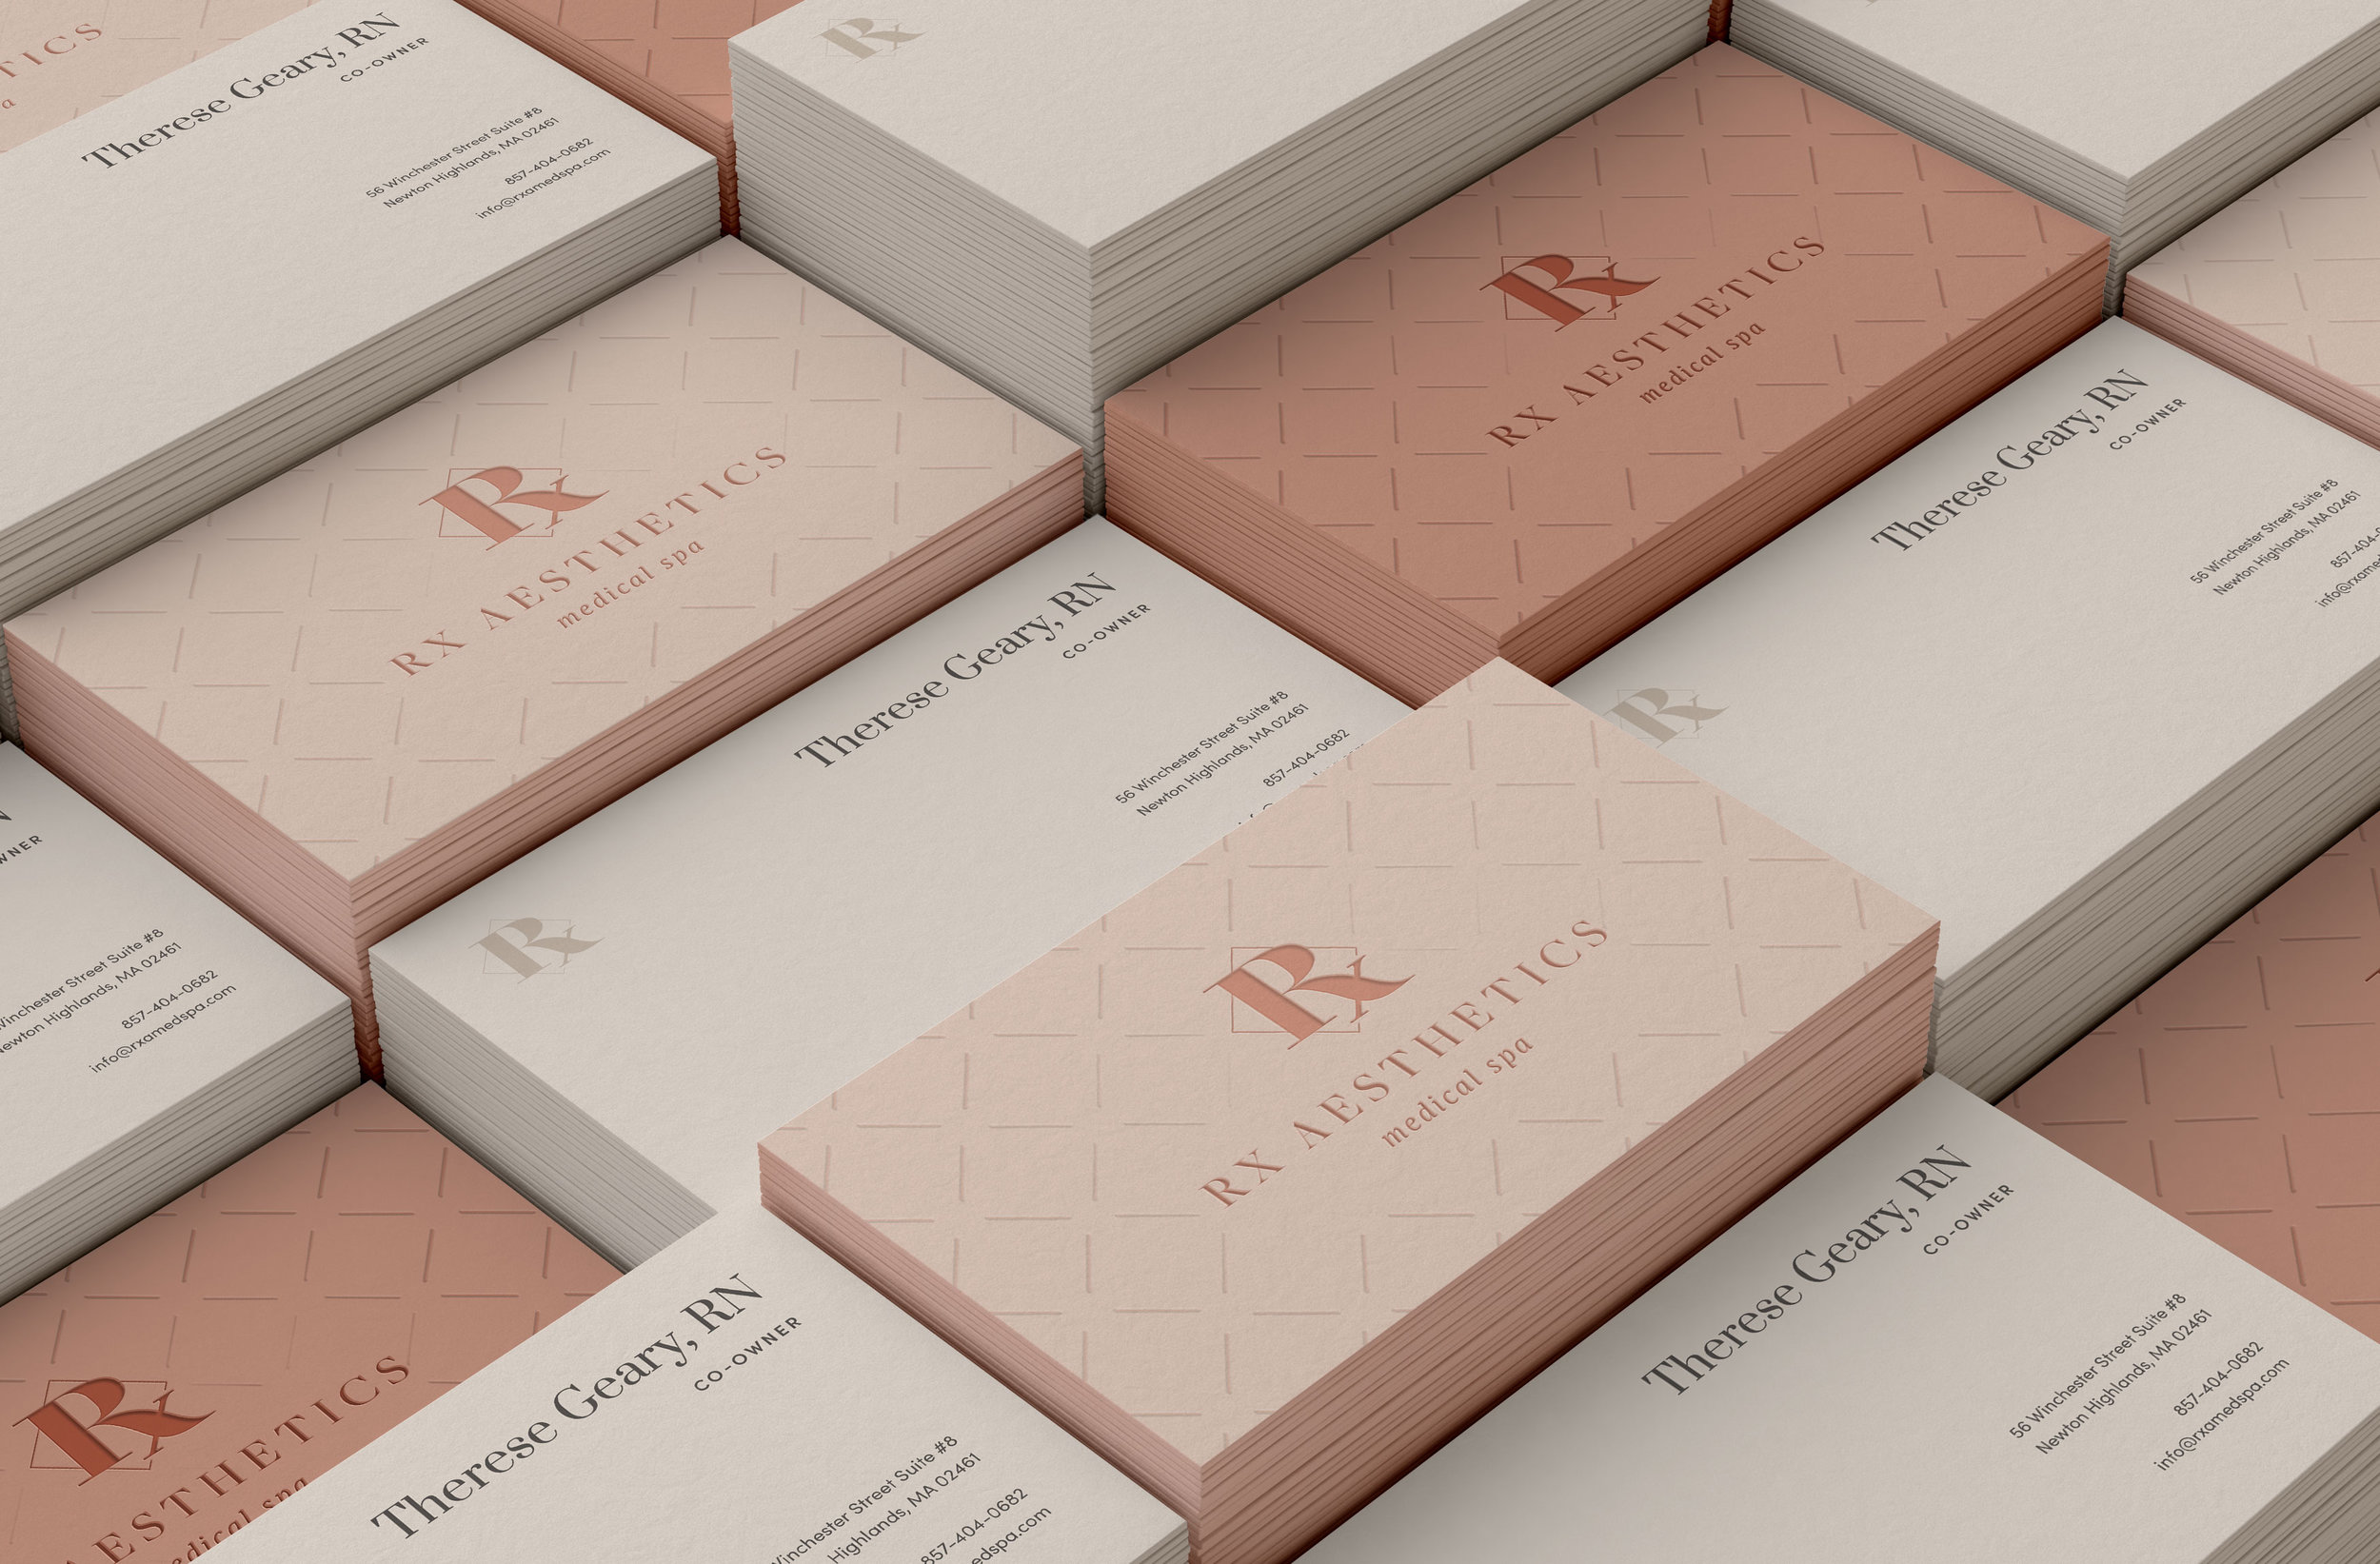 businesscards-rxa-04.jpg